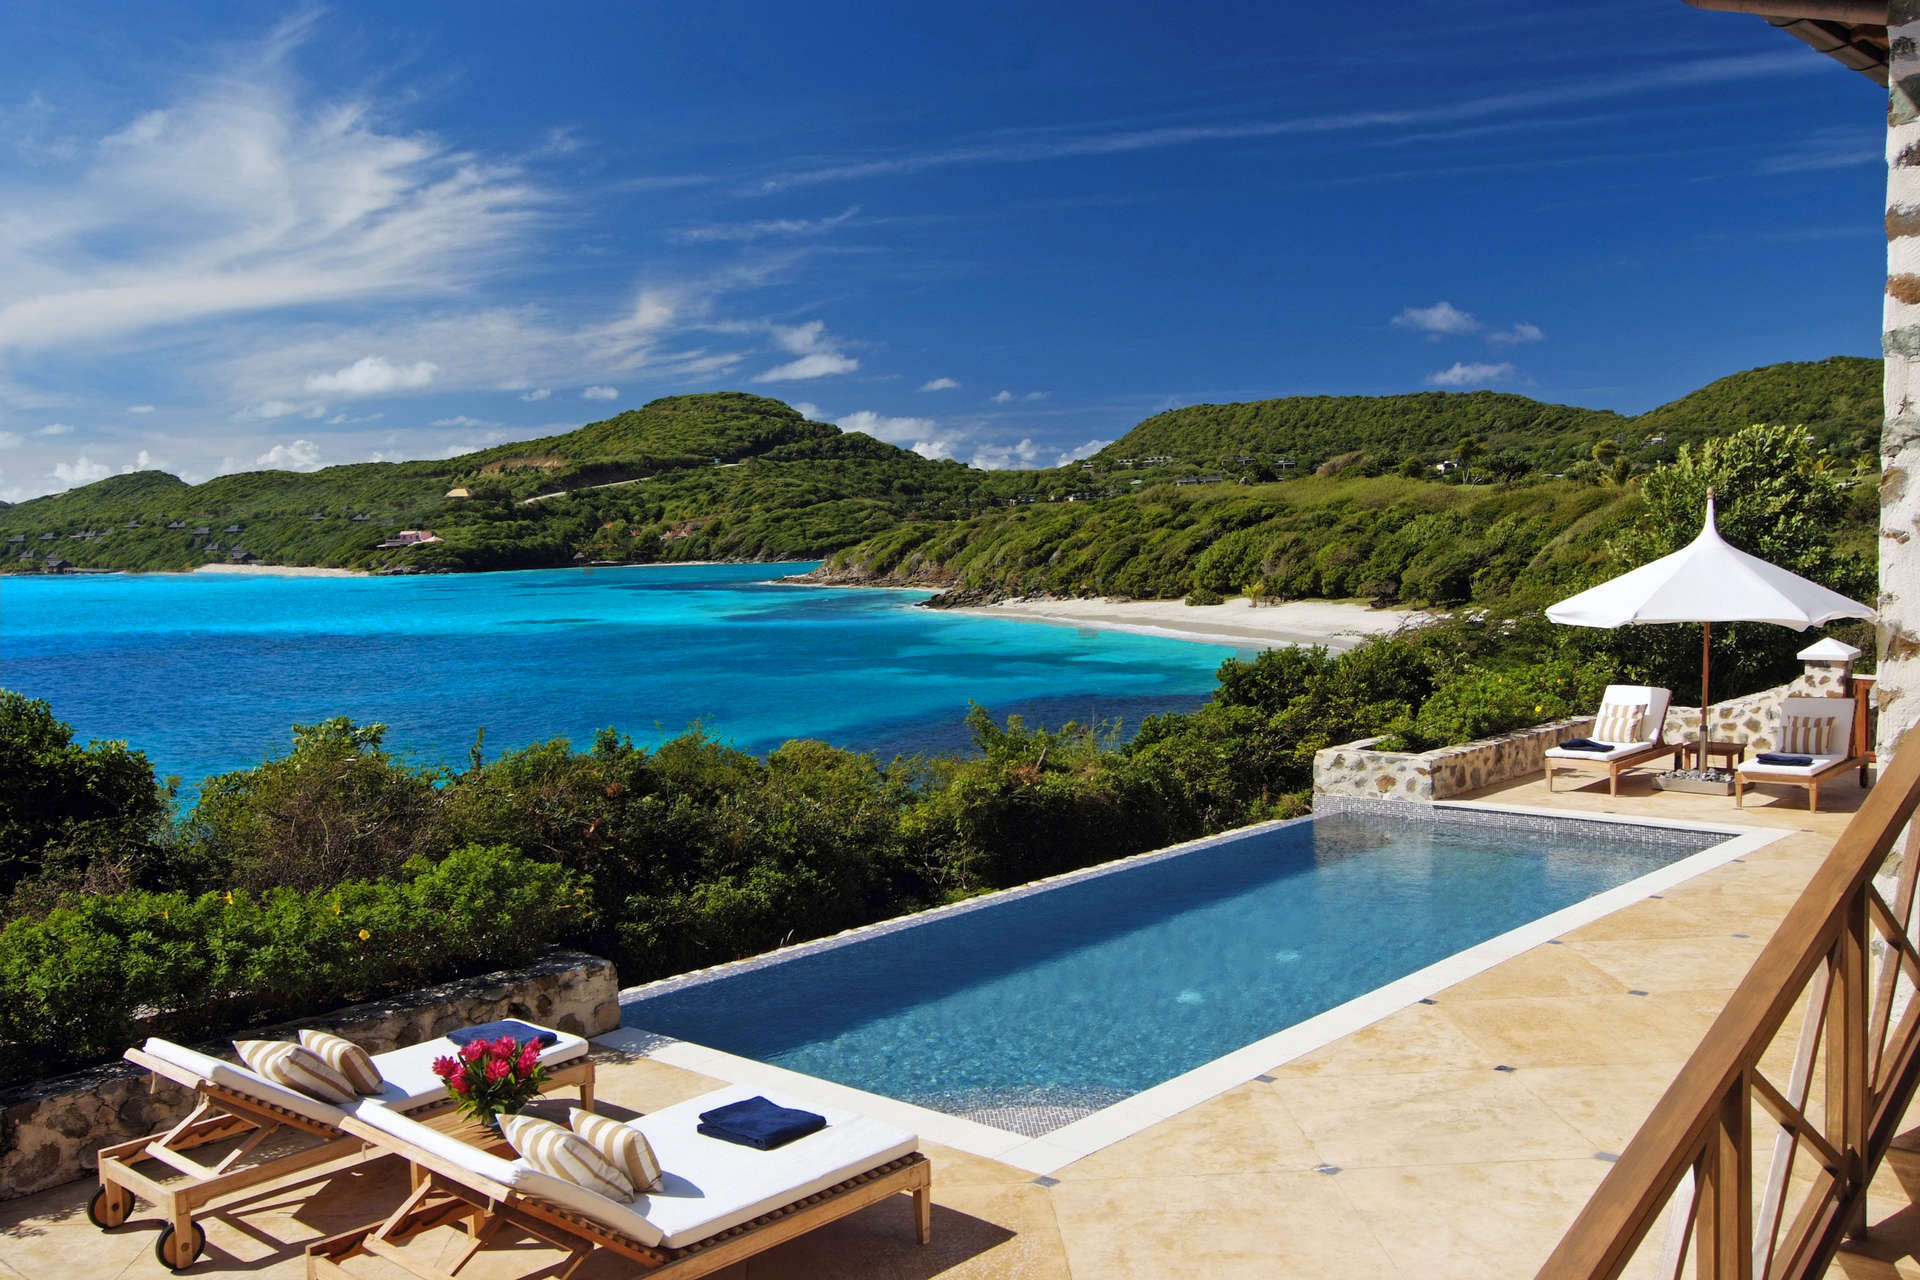 Luxury villa rentals caribbean - St vincent and the grenadines - Canouan - No location 4 - Canouan Beach House - Image 1/13